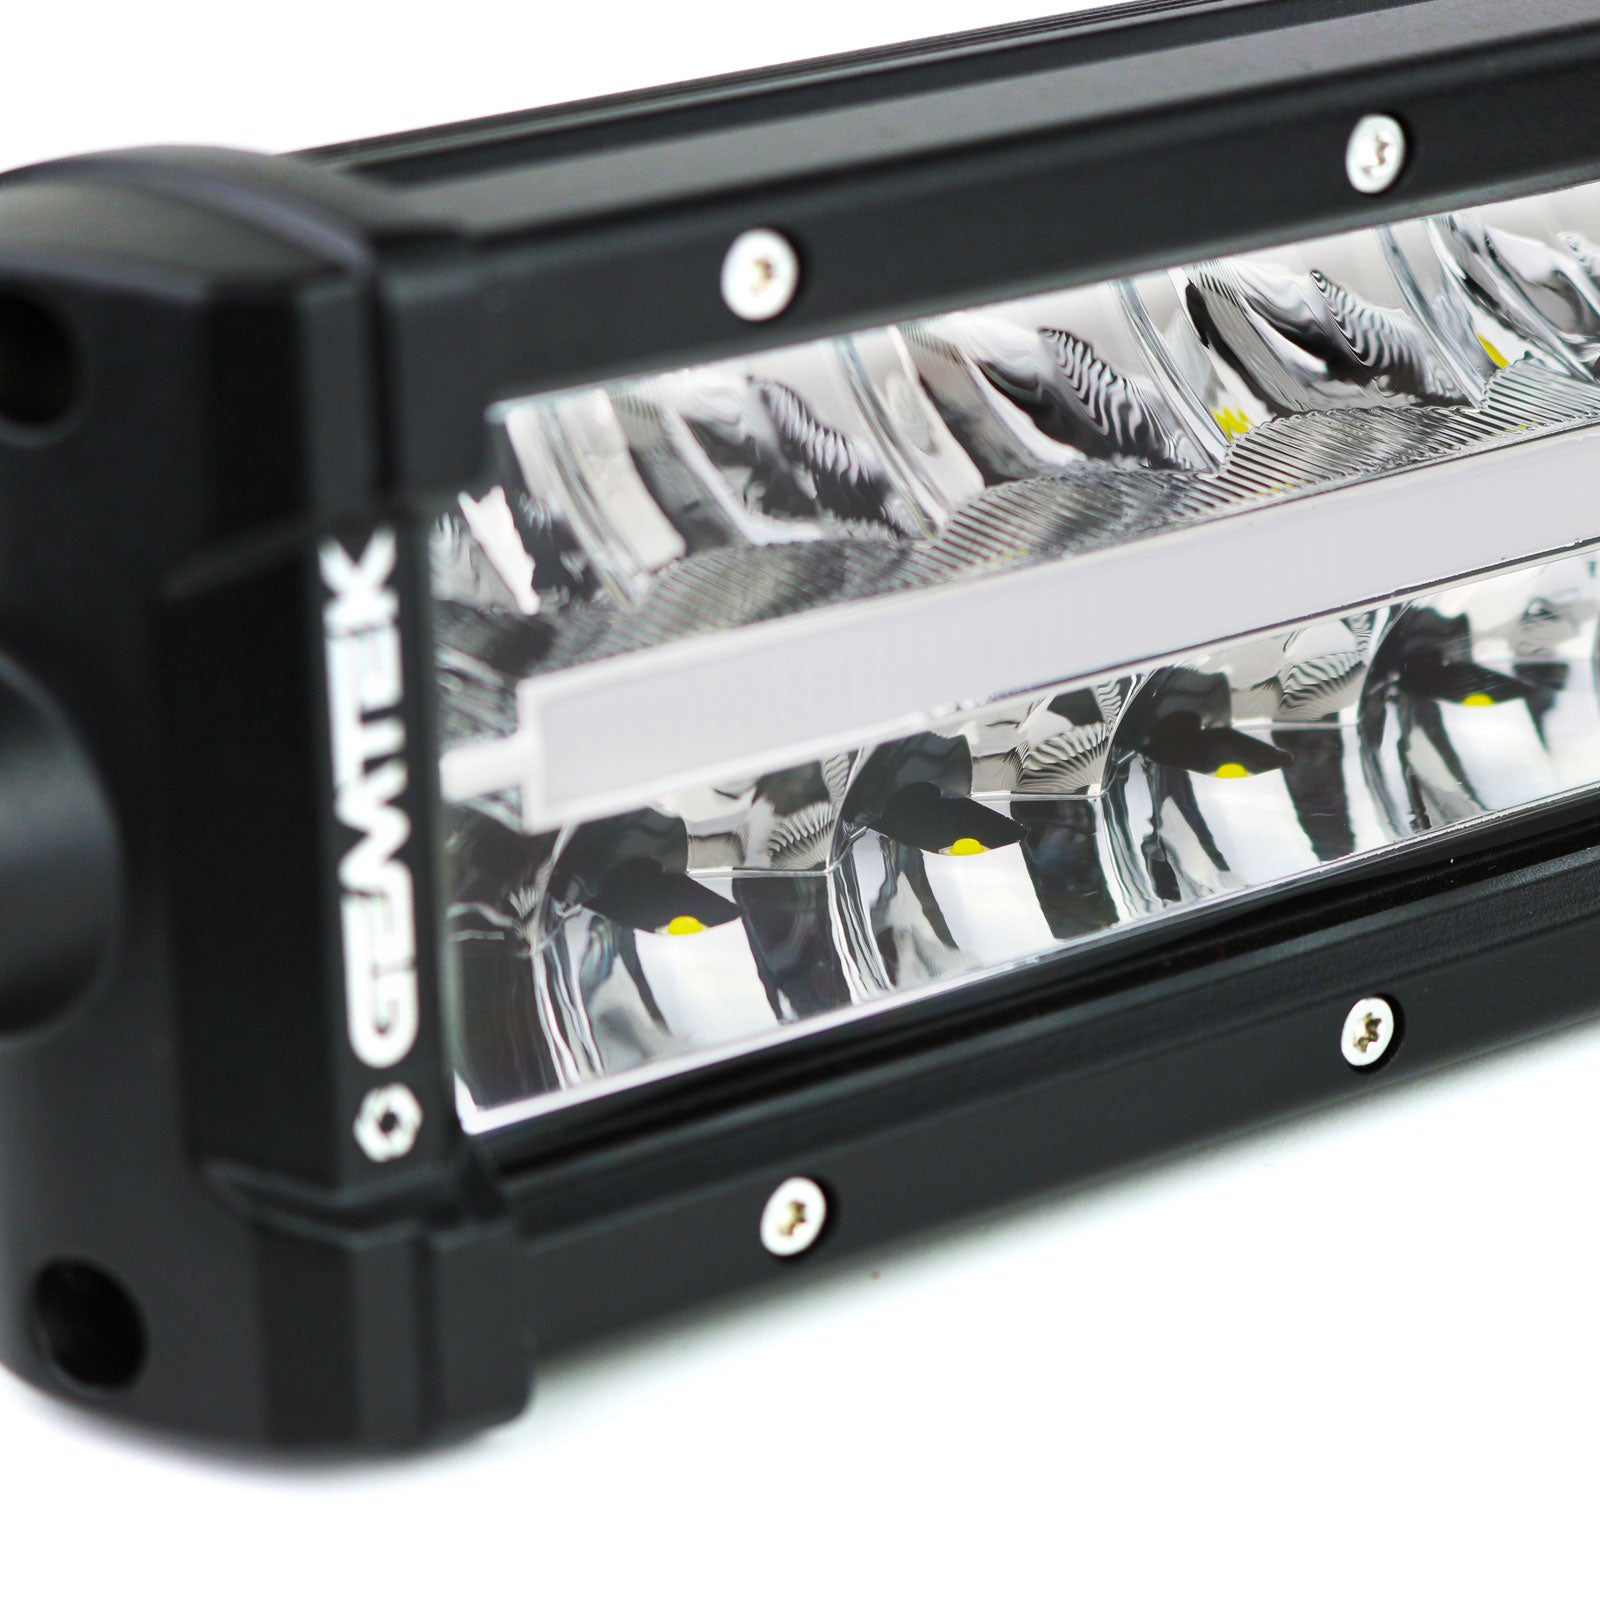 GEMTEK OSRAM LED LIGHT BAR